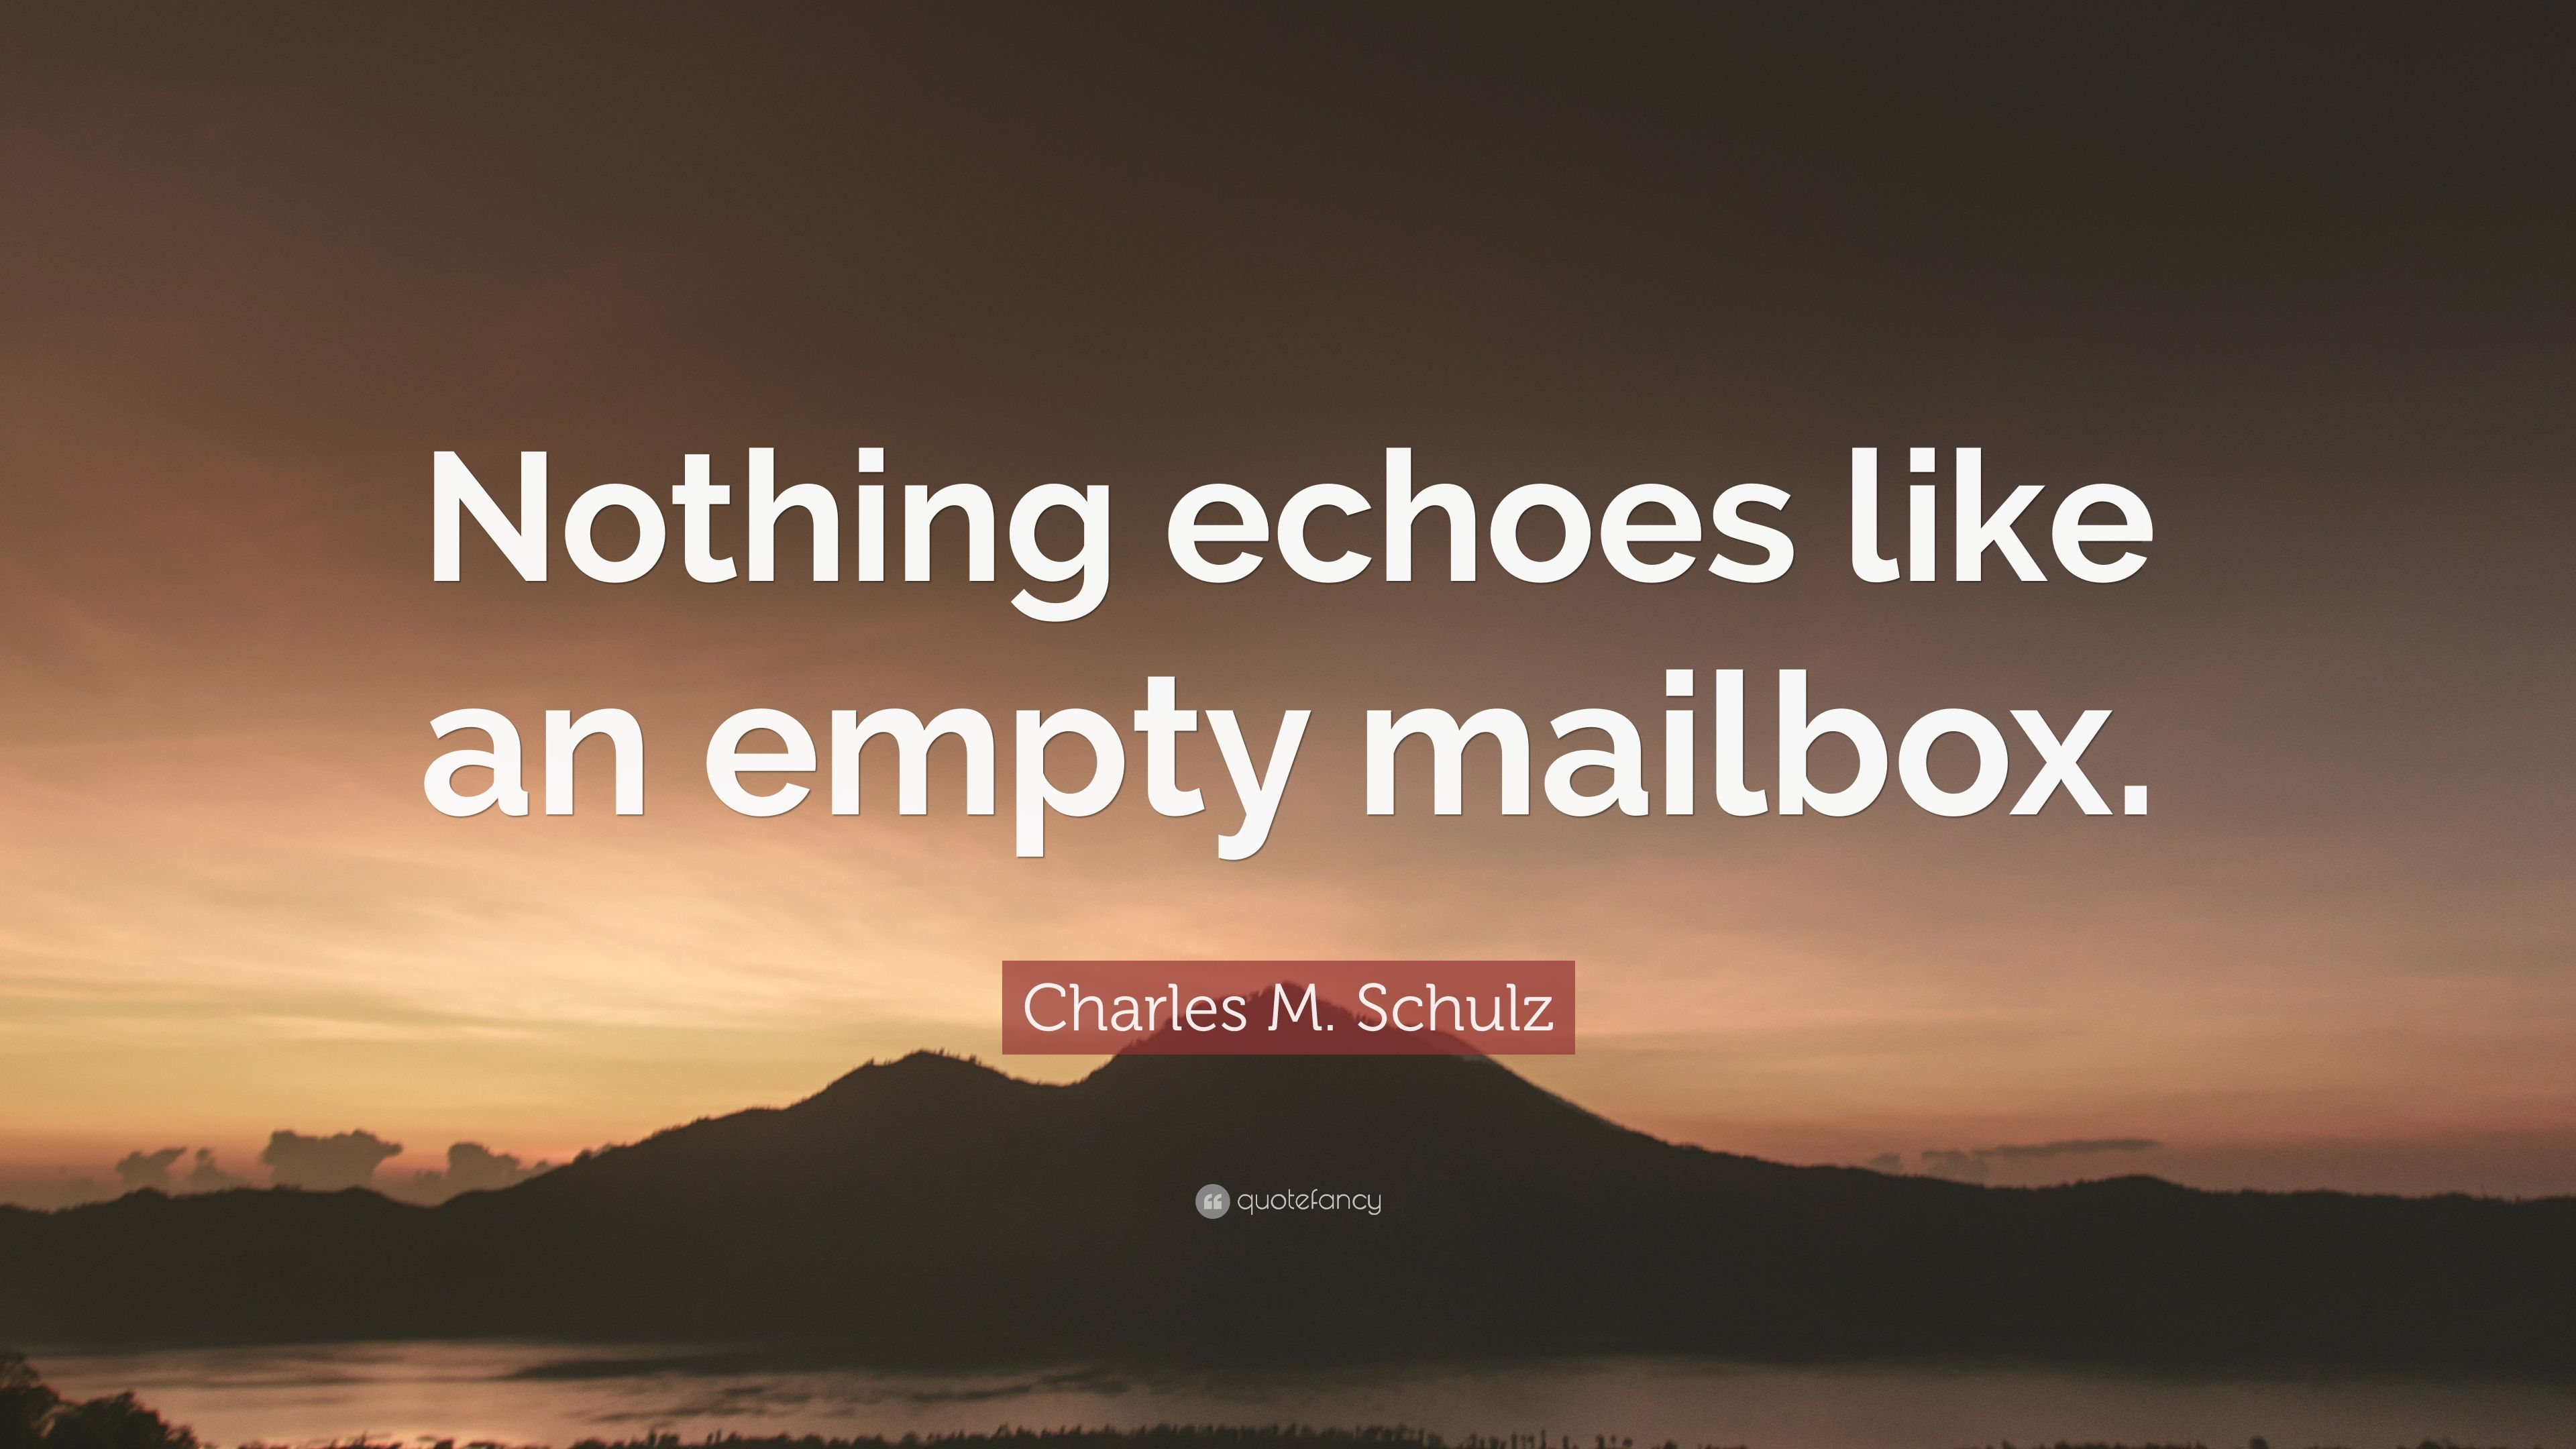 Charles M Schulz Quote Nothing echoes like an empty mailbox